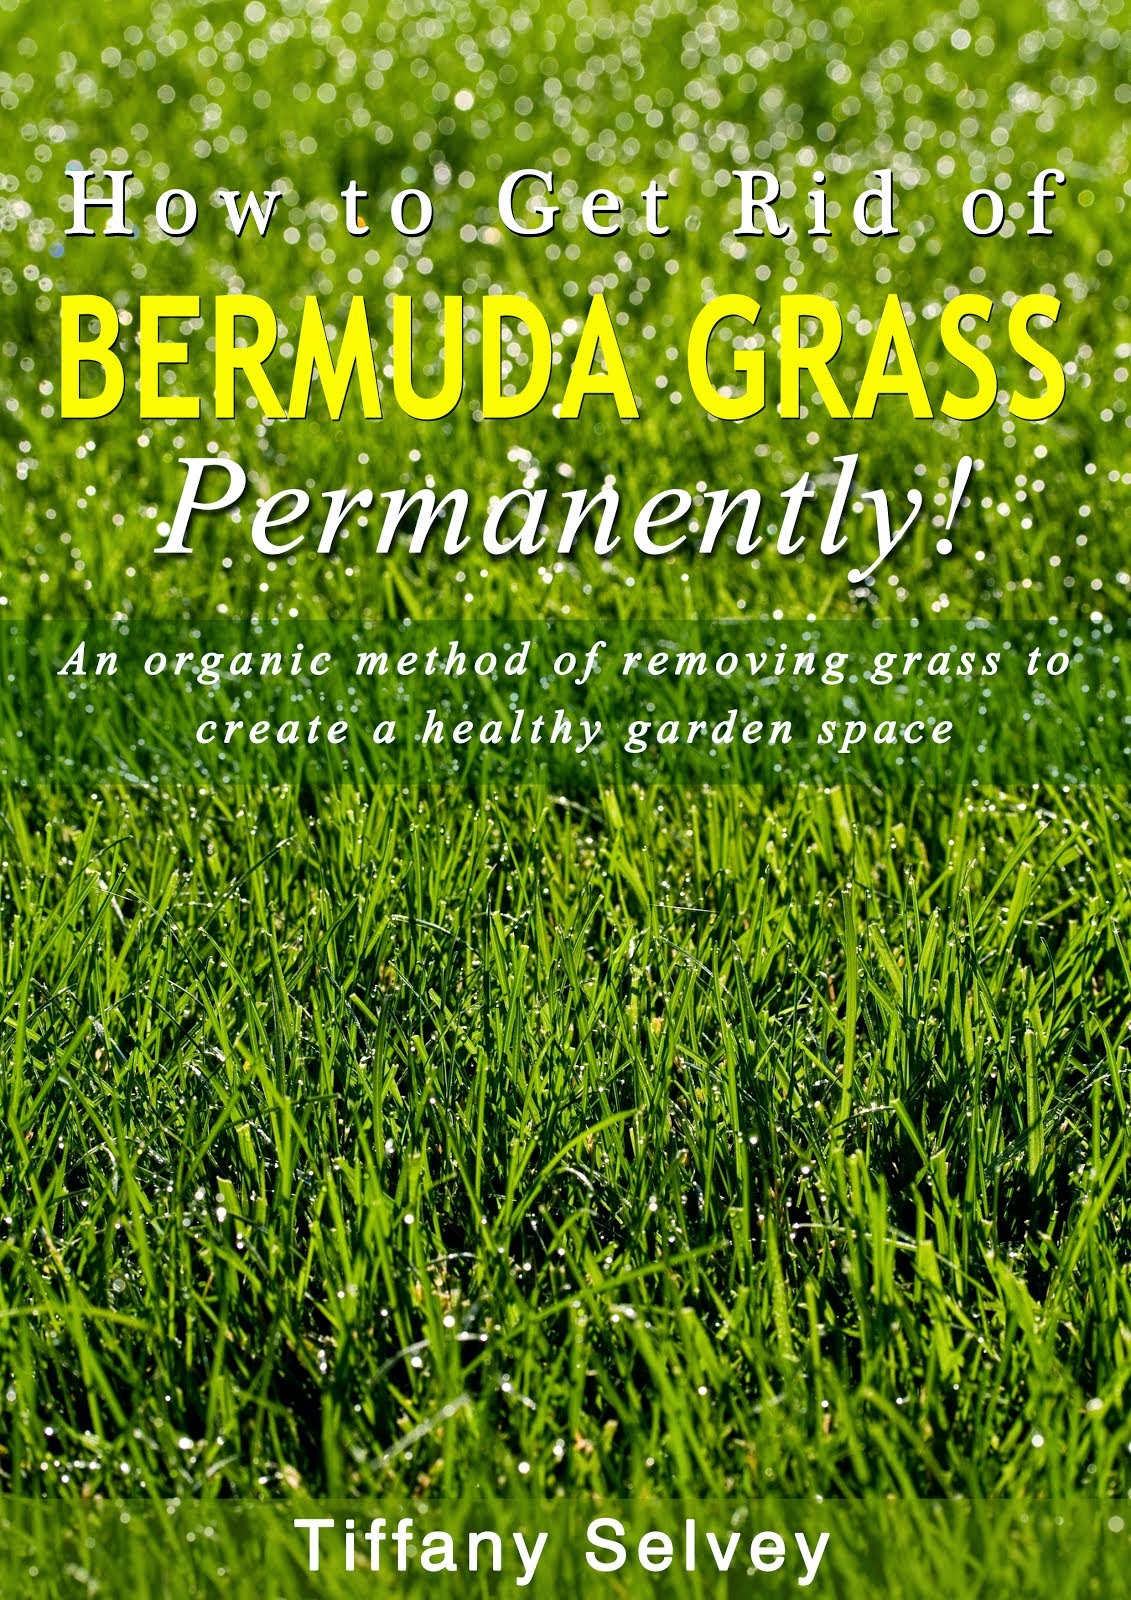 How to Get Rid of Bermuda Grass... Permantly!